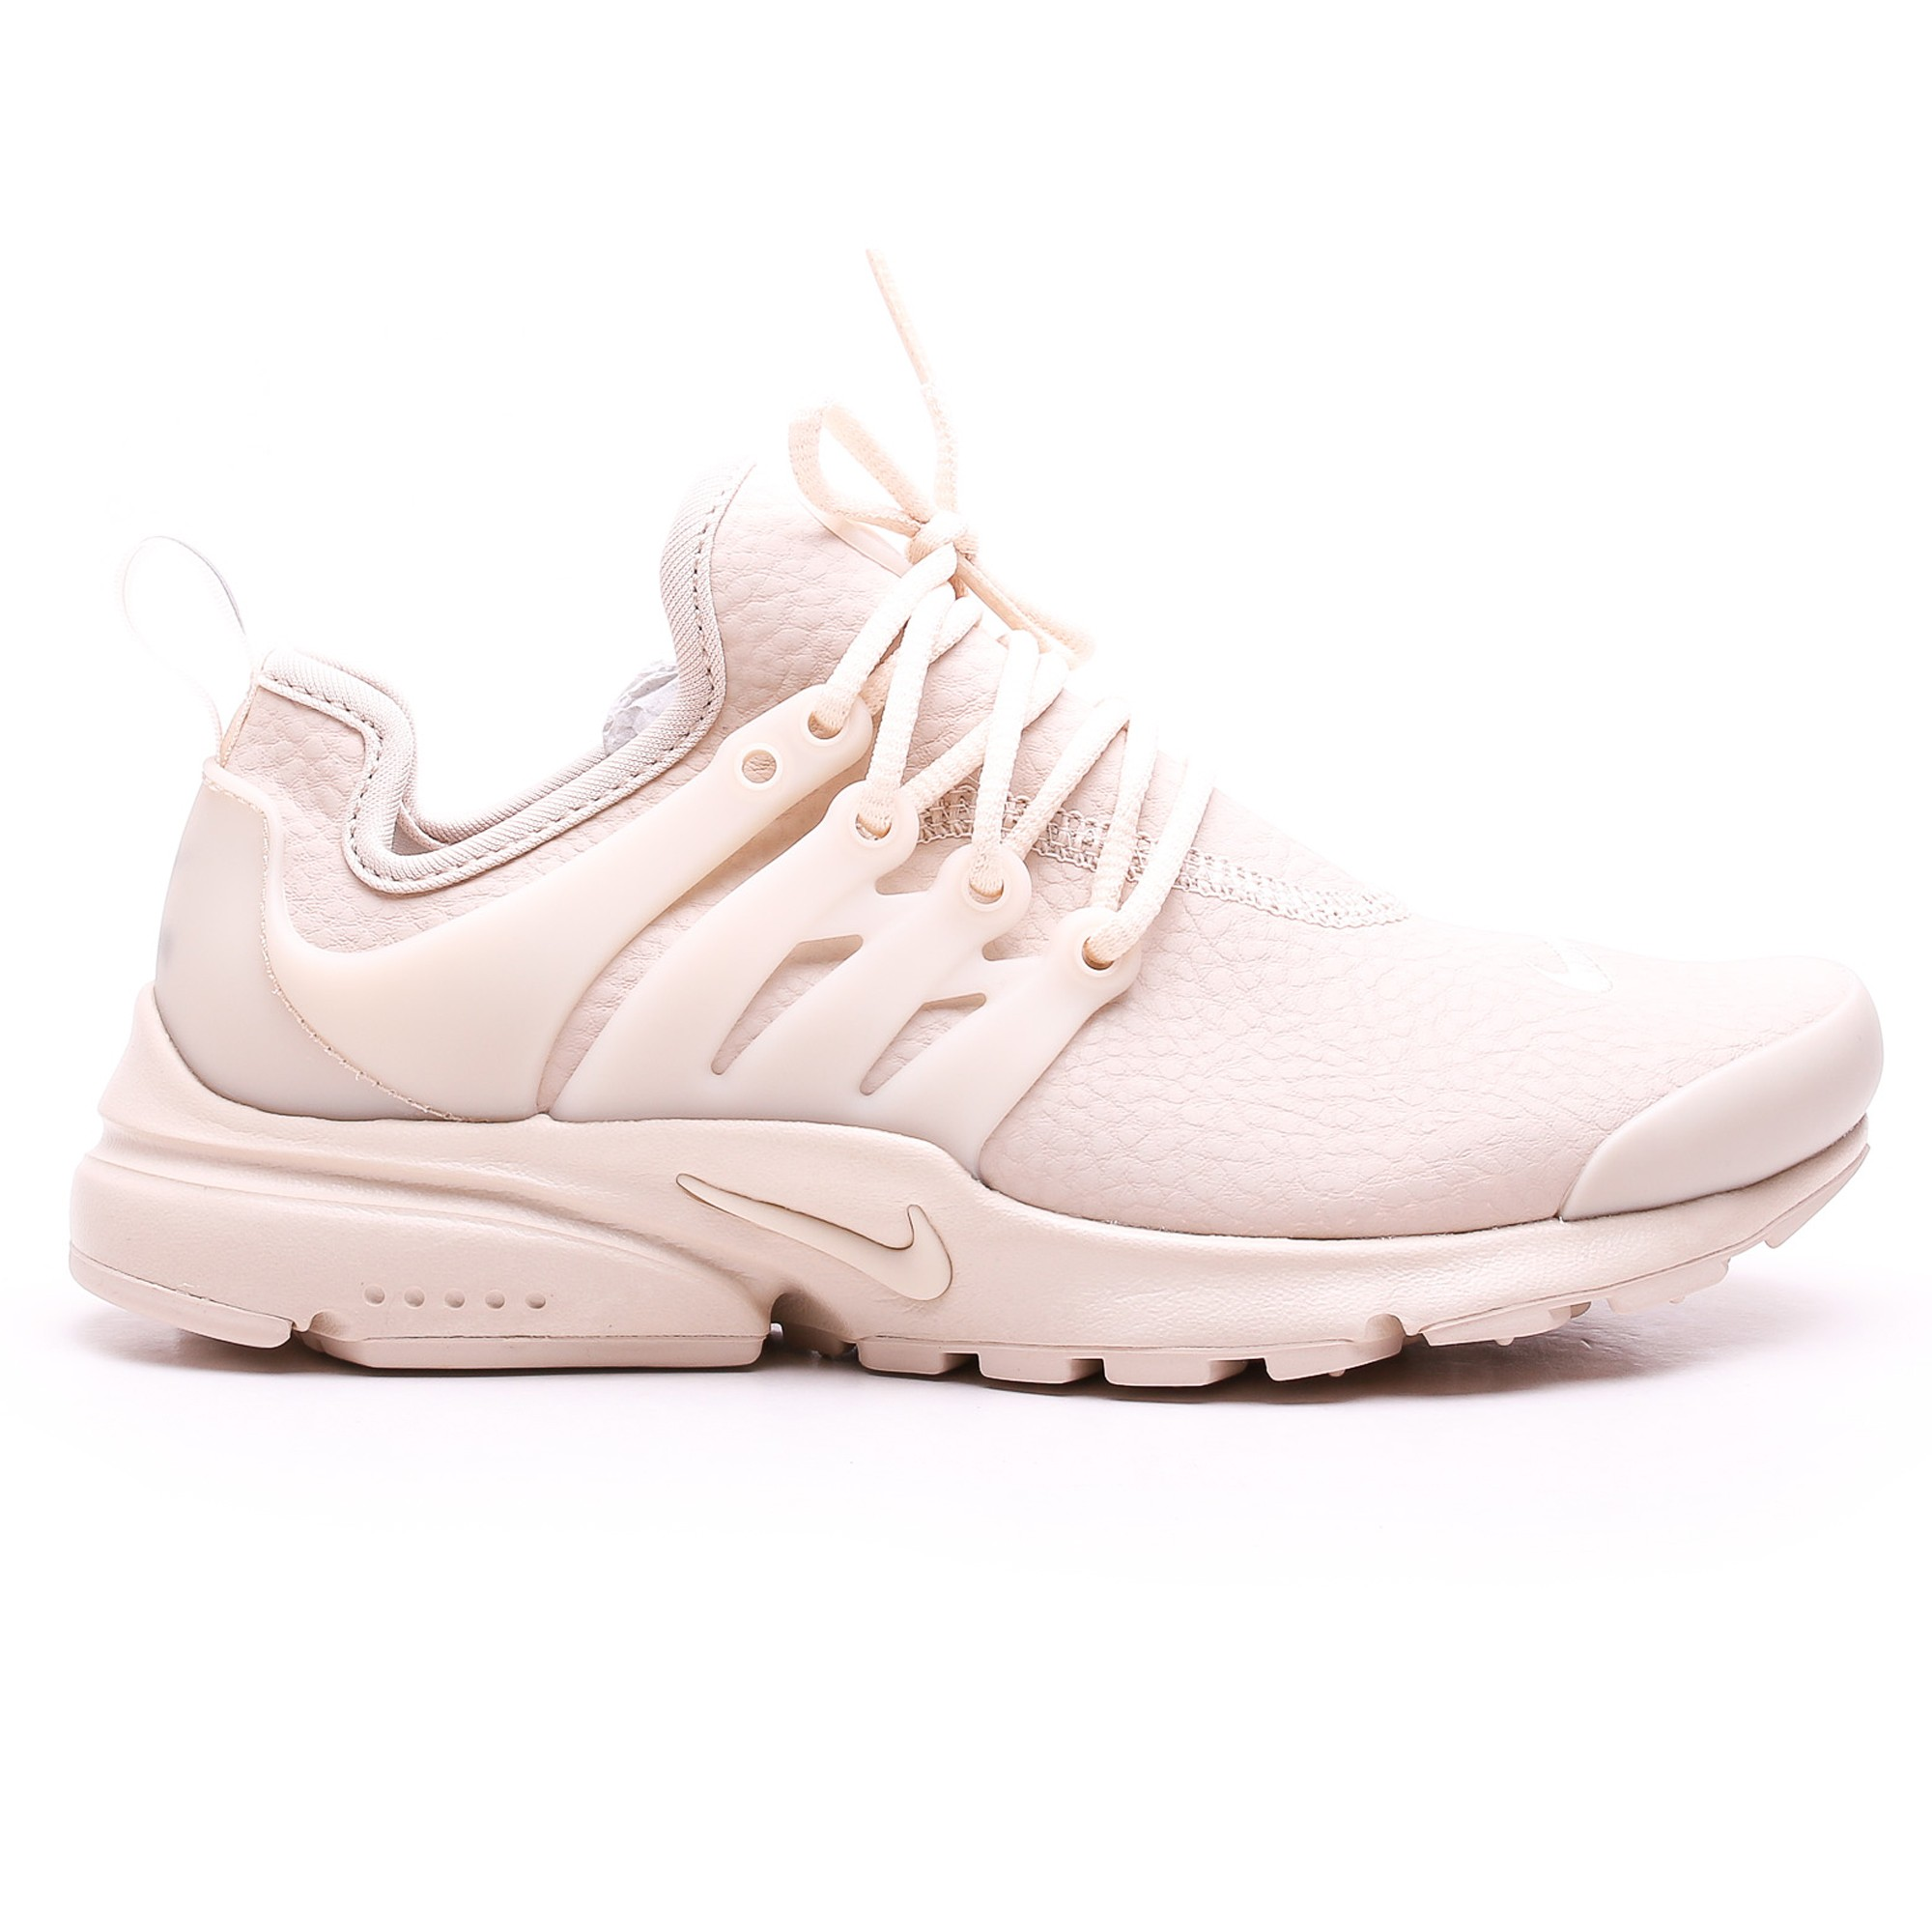 9bbd121439cb ... top quality nike women air presto prm oatmeal . cf323 8b0e2